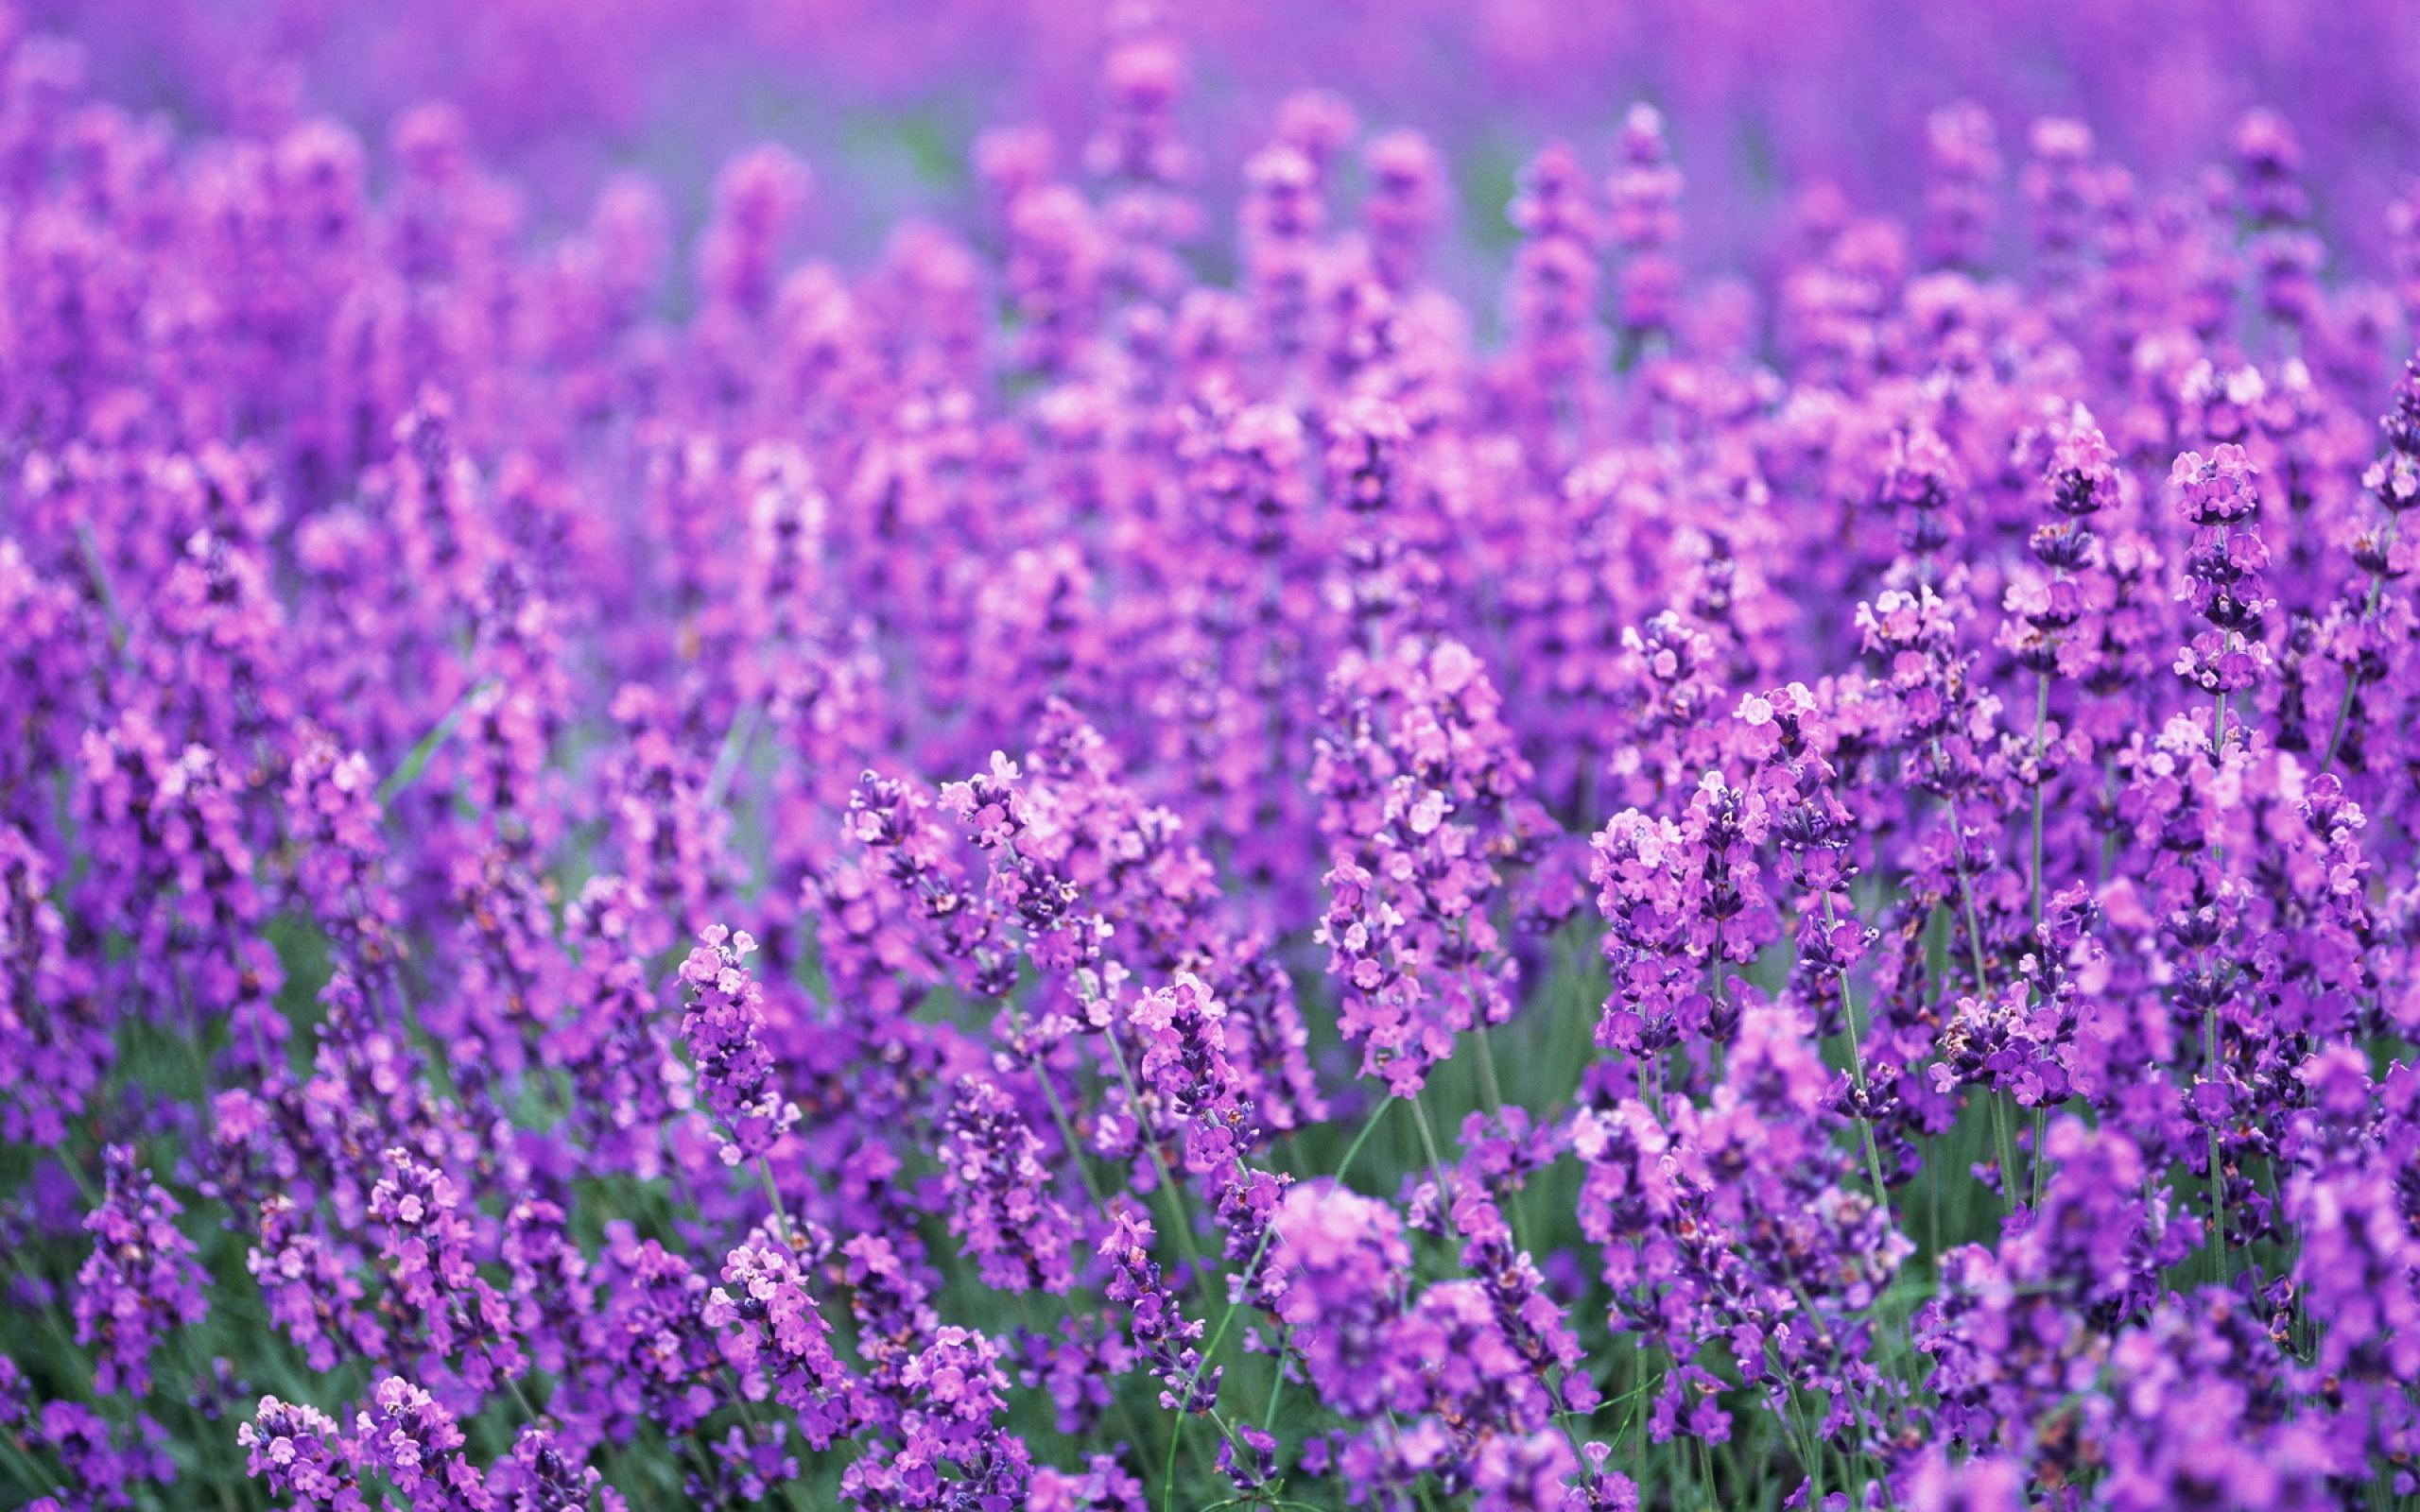 Lavender Flowers Desktop Background   Wallpaper High 2560x1600